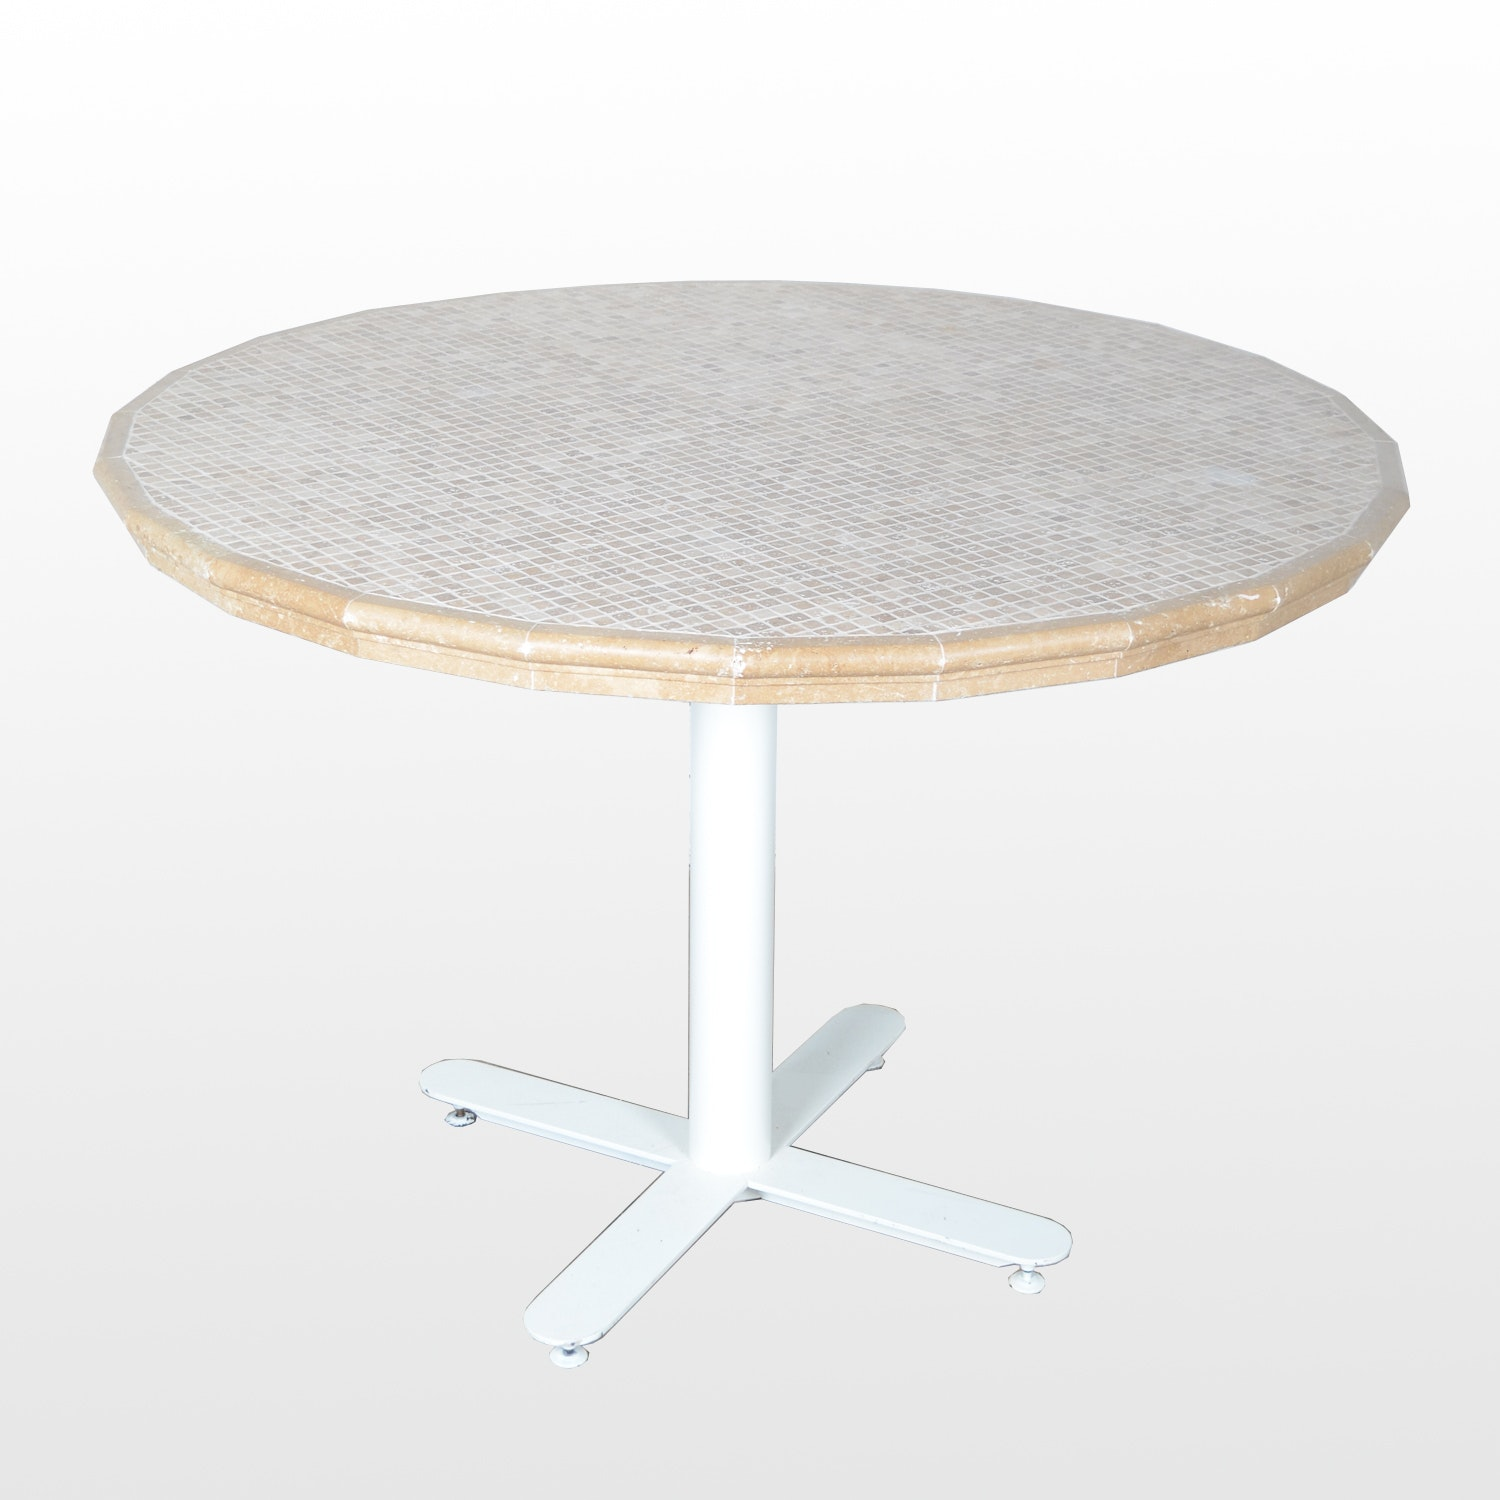 Tile Top Table with Metal Base